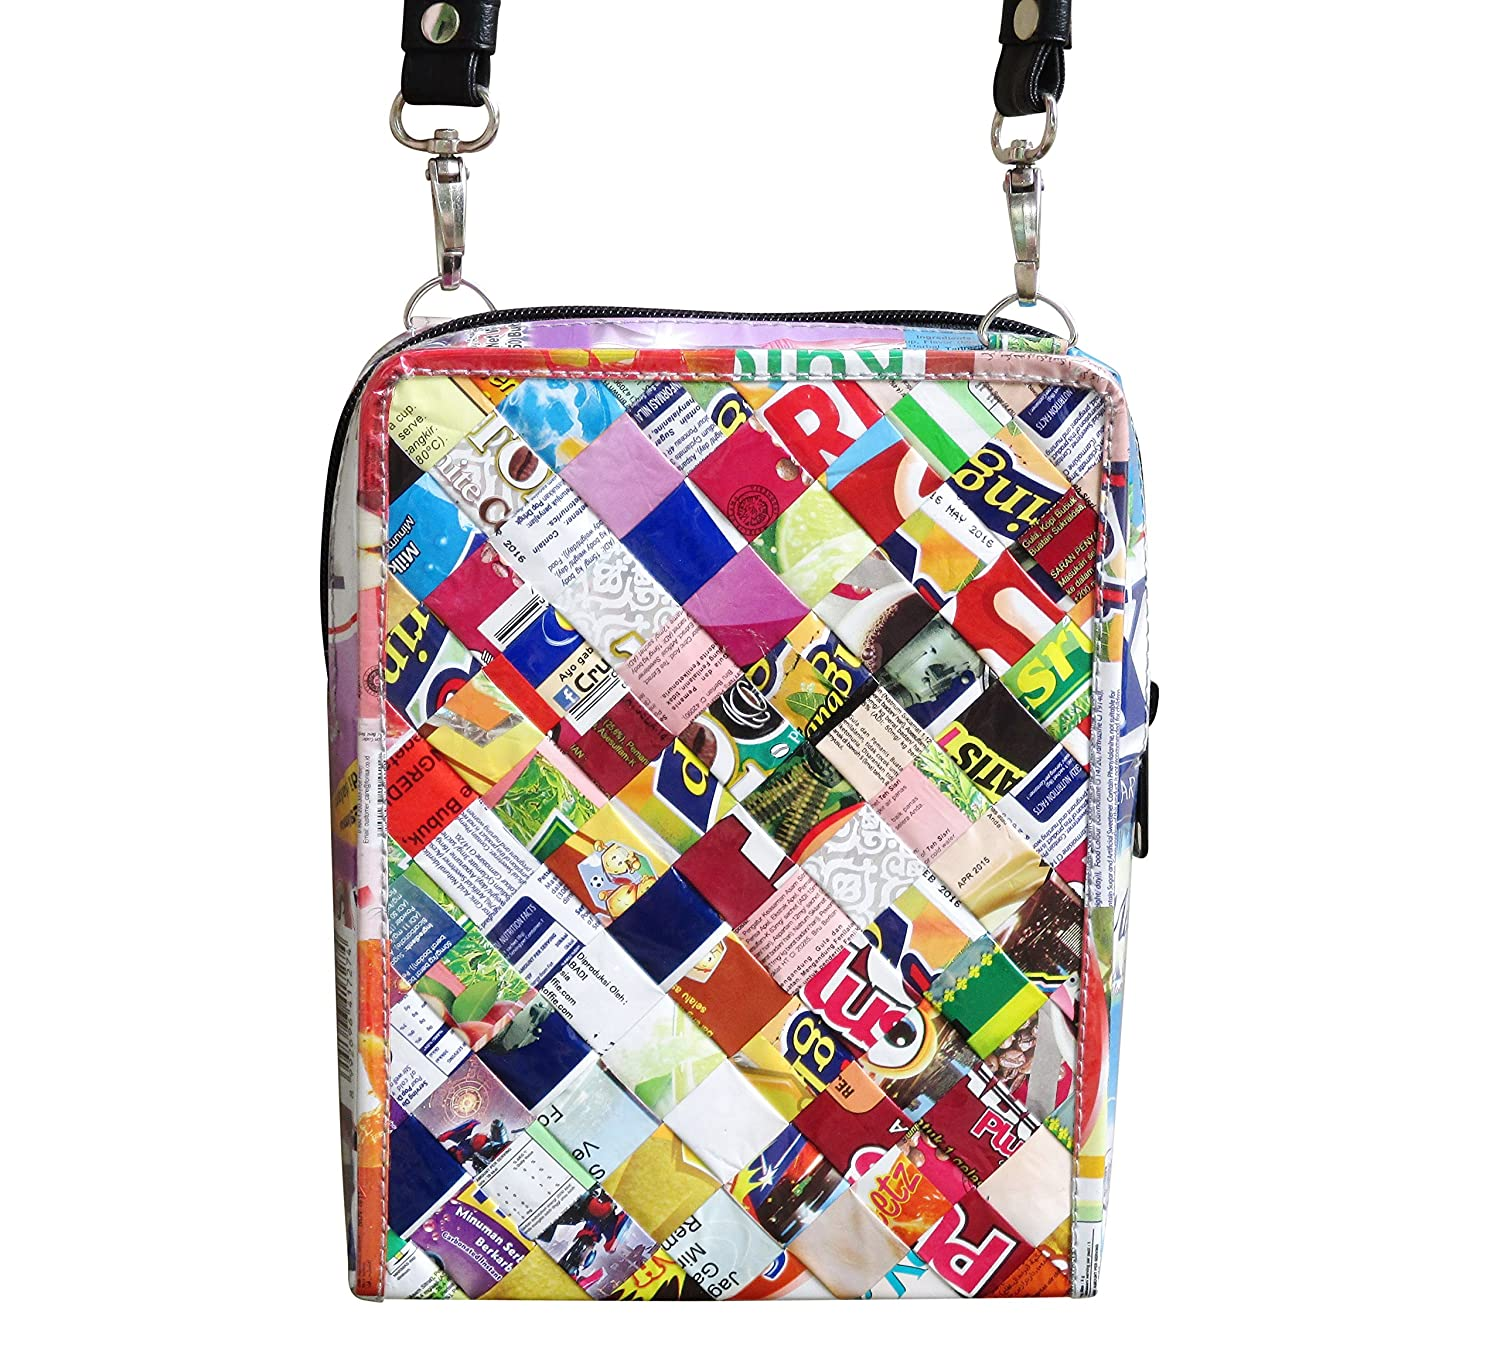 72e057513d Small crossbody using candy wrappers - FREE SHIPPING Fair trade ethical  special fun present presents cute finds inspiring ideas functional bags  handbags ...